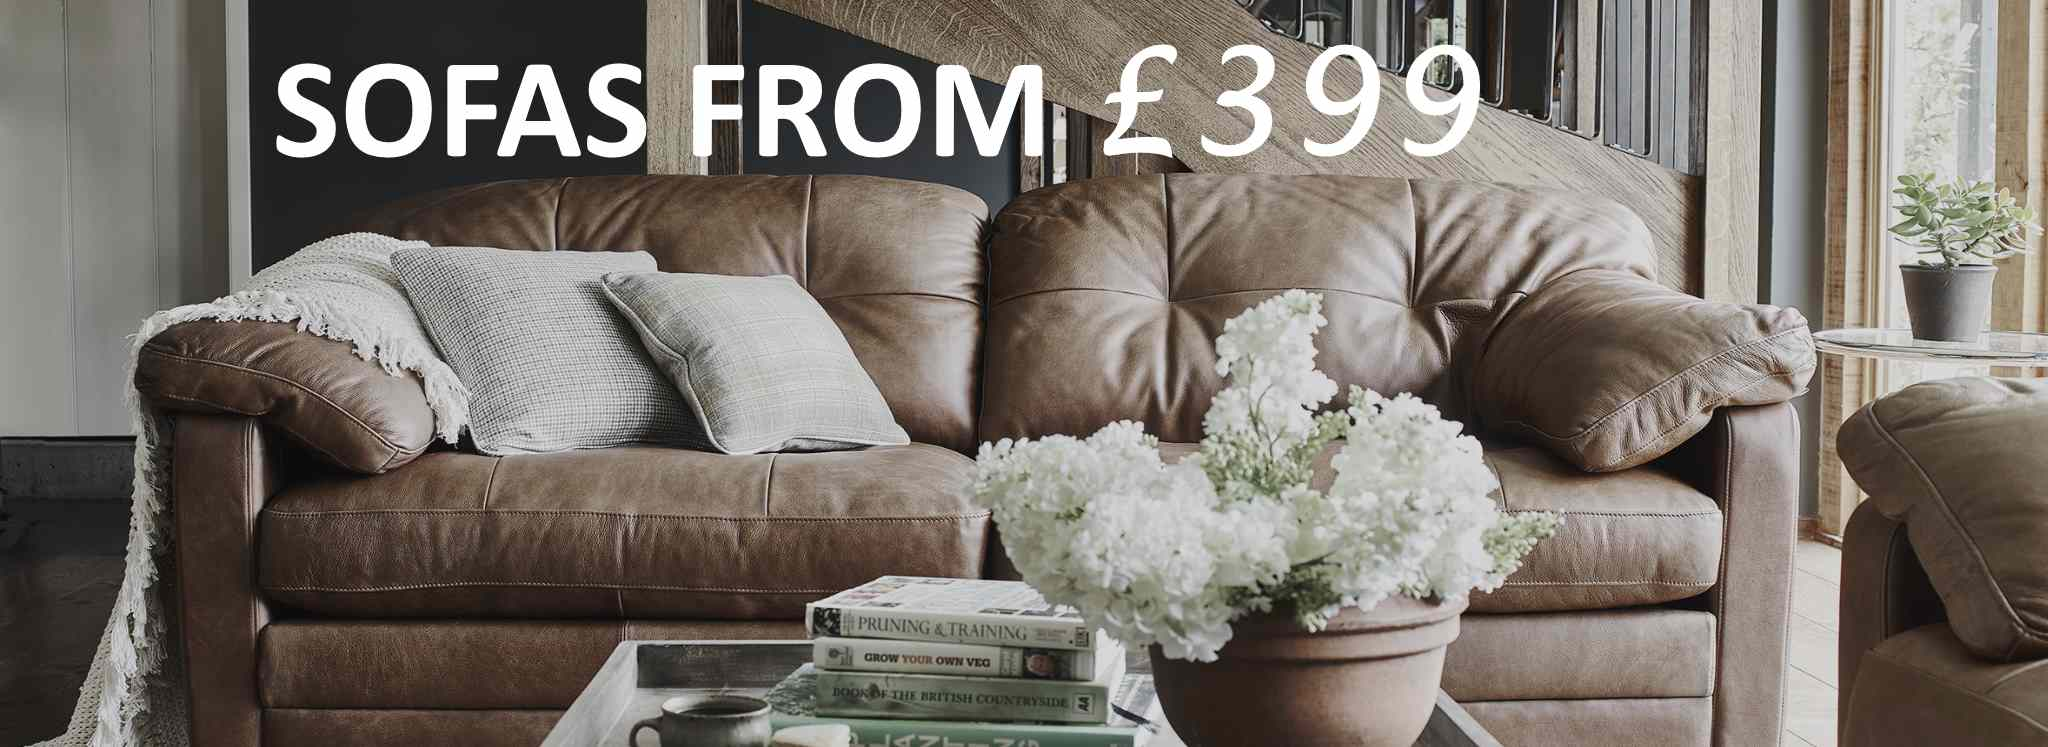 Sofas From £399 Newport Wales